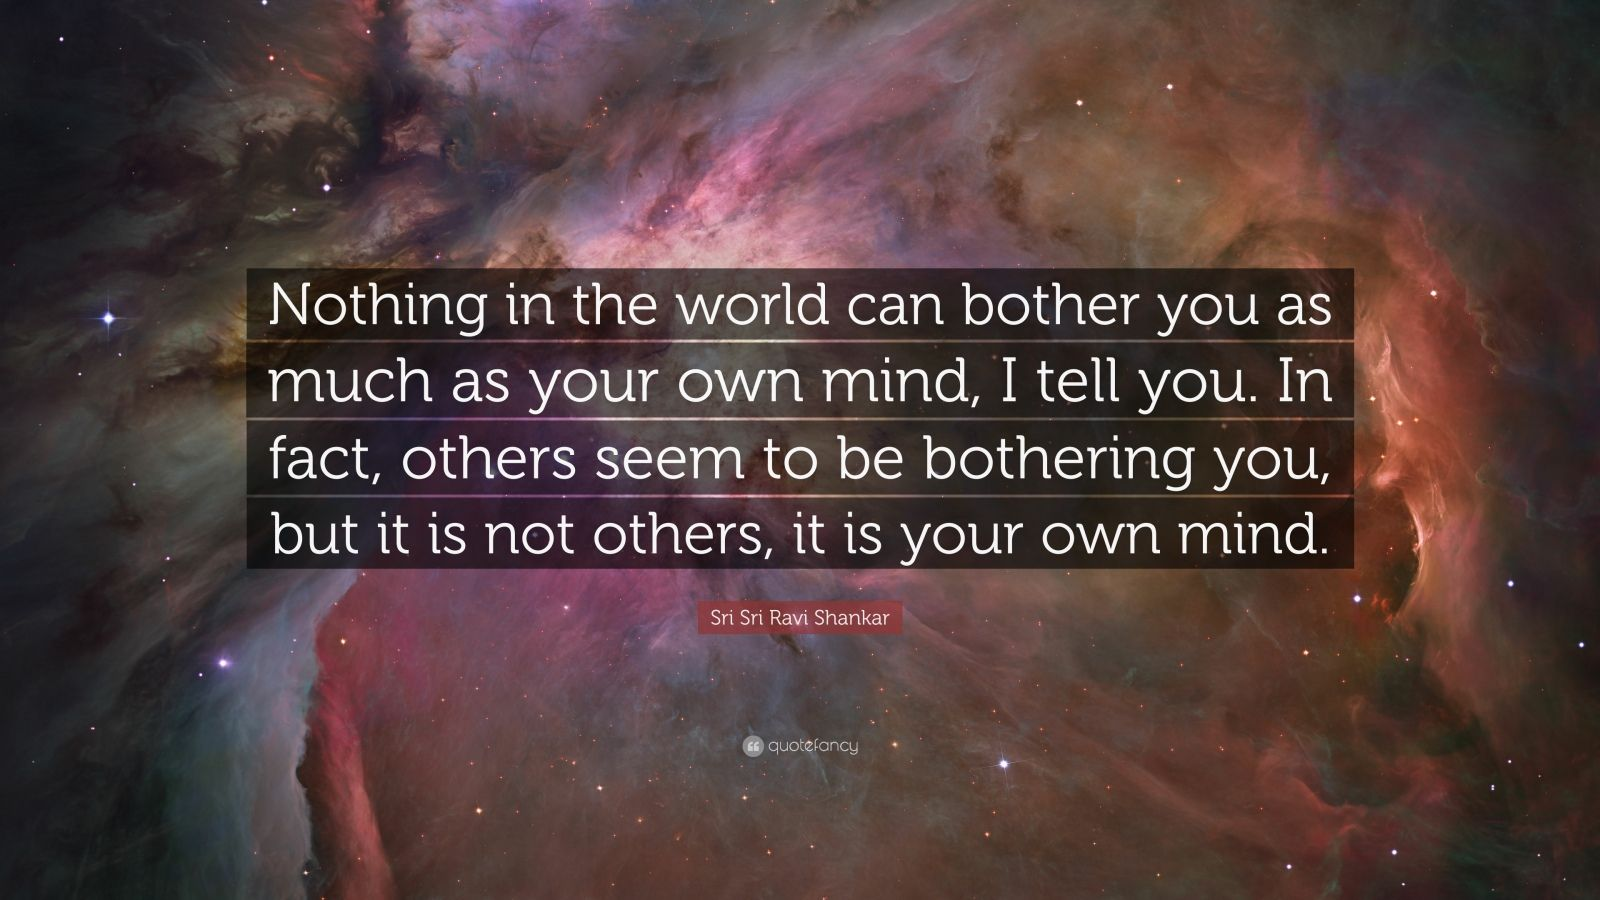 "Sri Sri Ravi Shankar Quote: ""Nothing in the world can bother you as much as your own mind, I tell you. In fact, others seem to be bothering you, but it is not others, it is your own mind."""